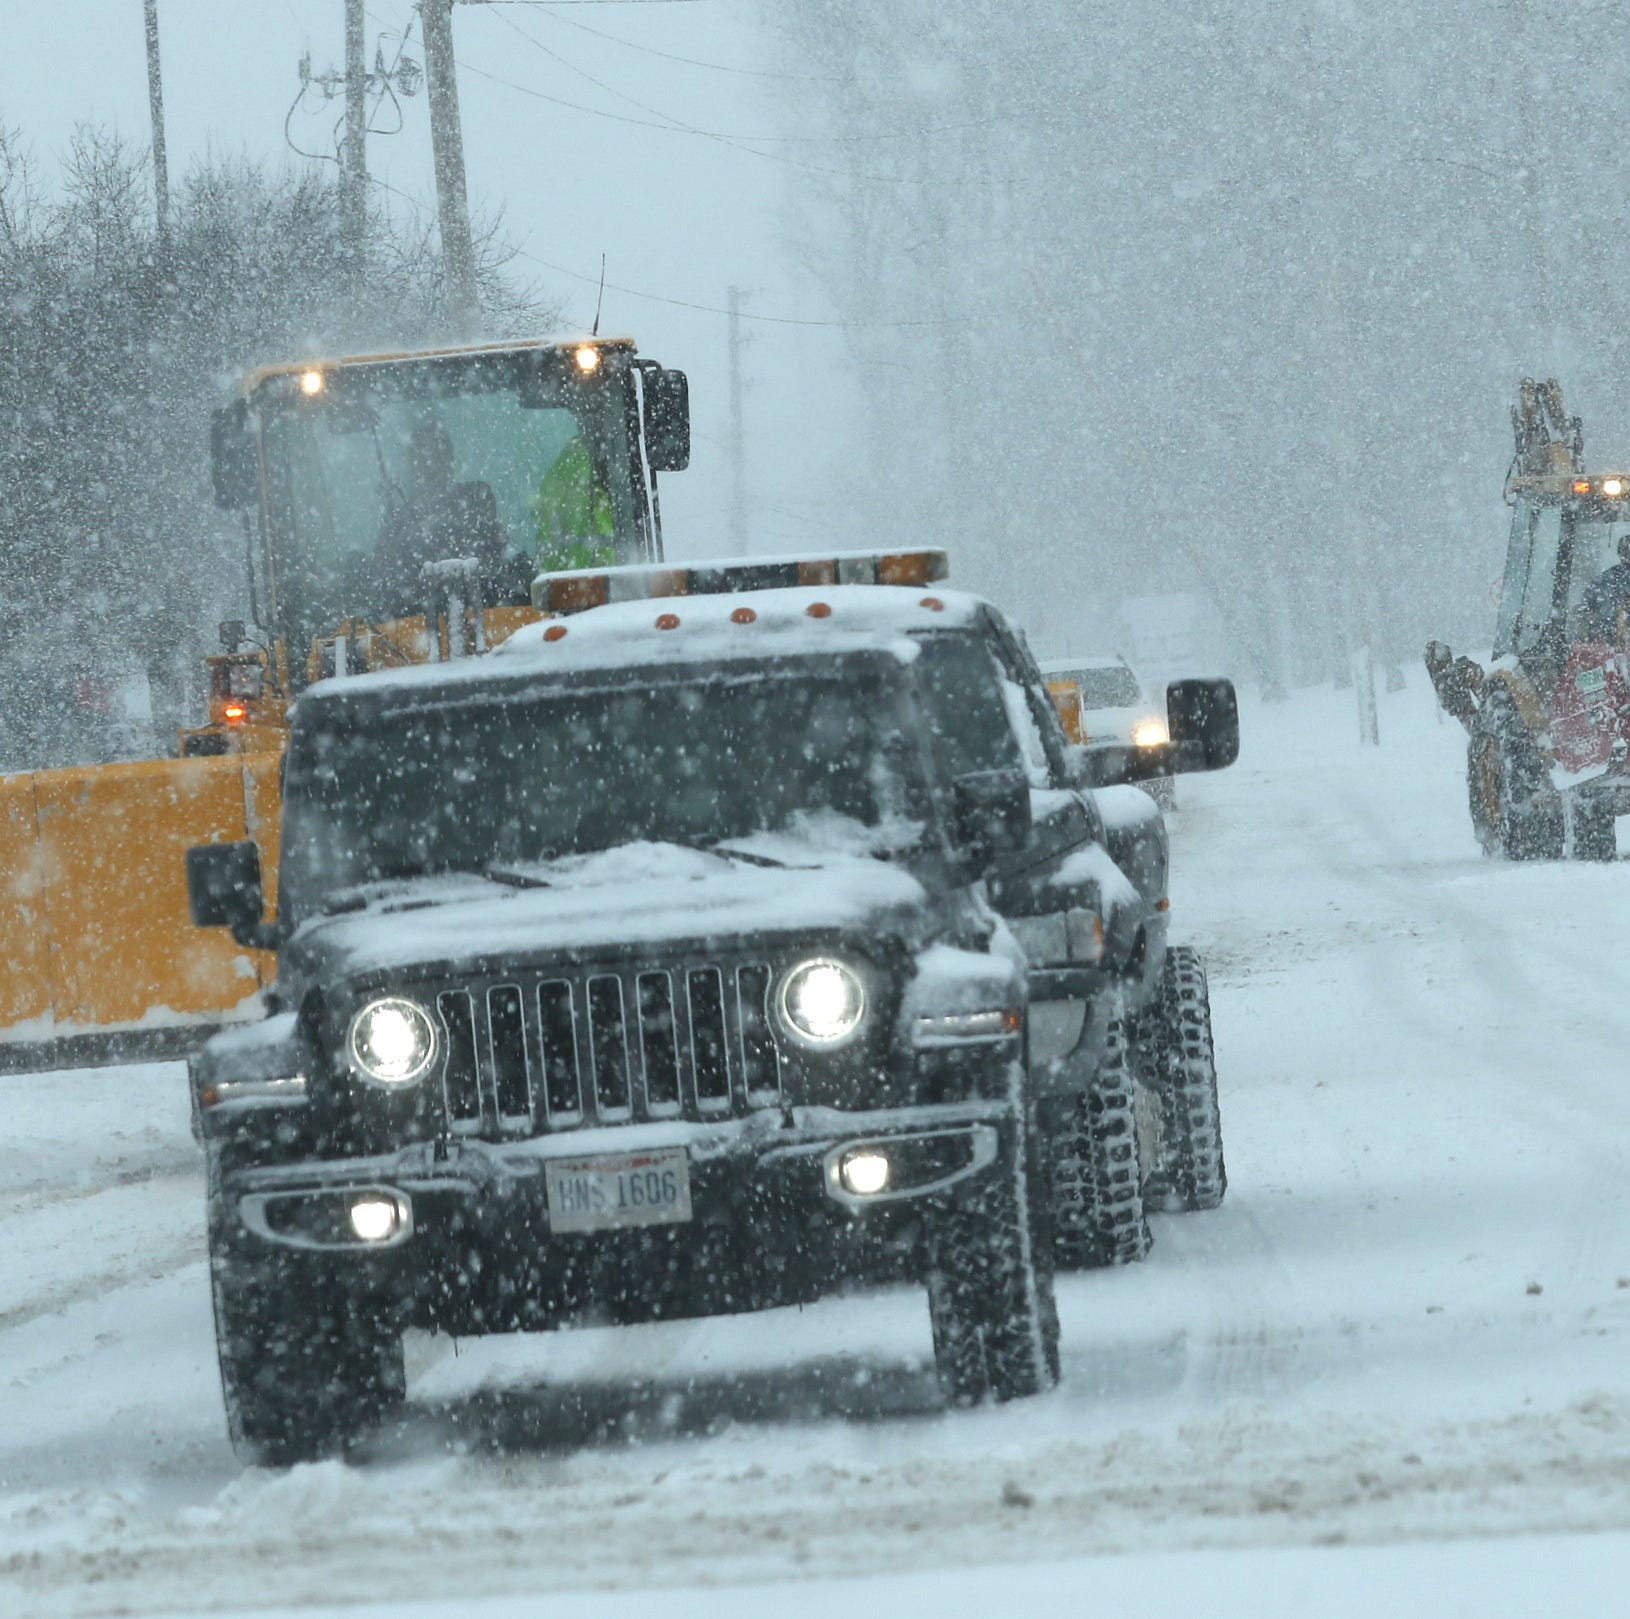 Winter storm Harper hits Richland County